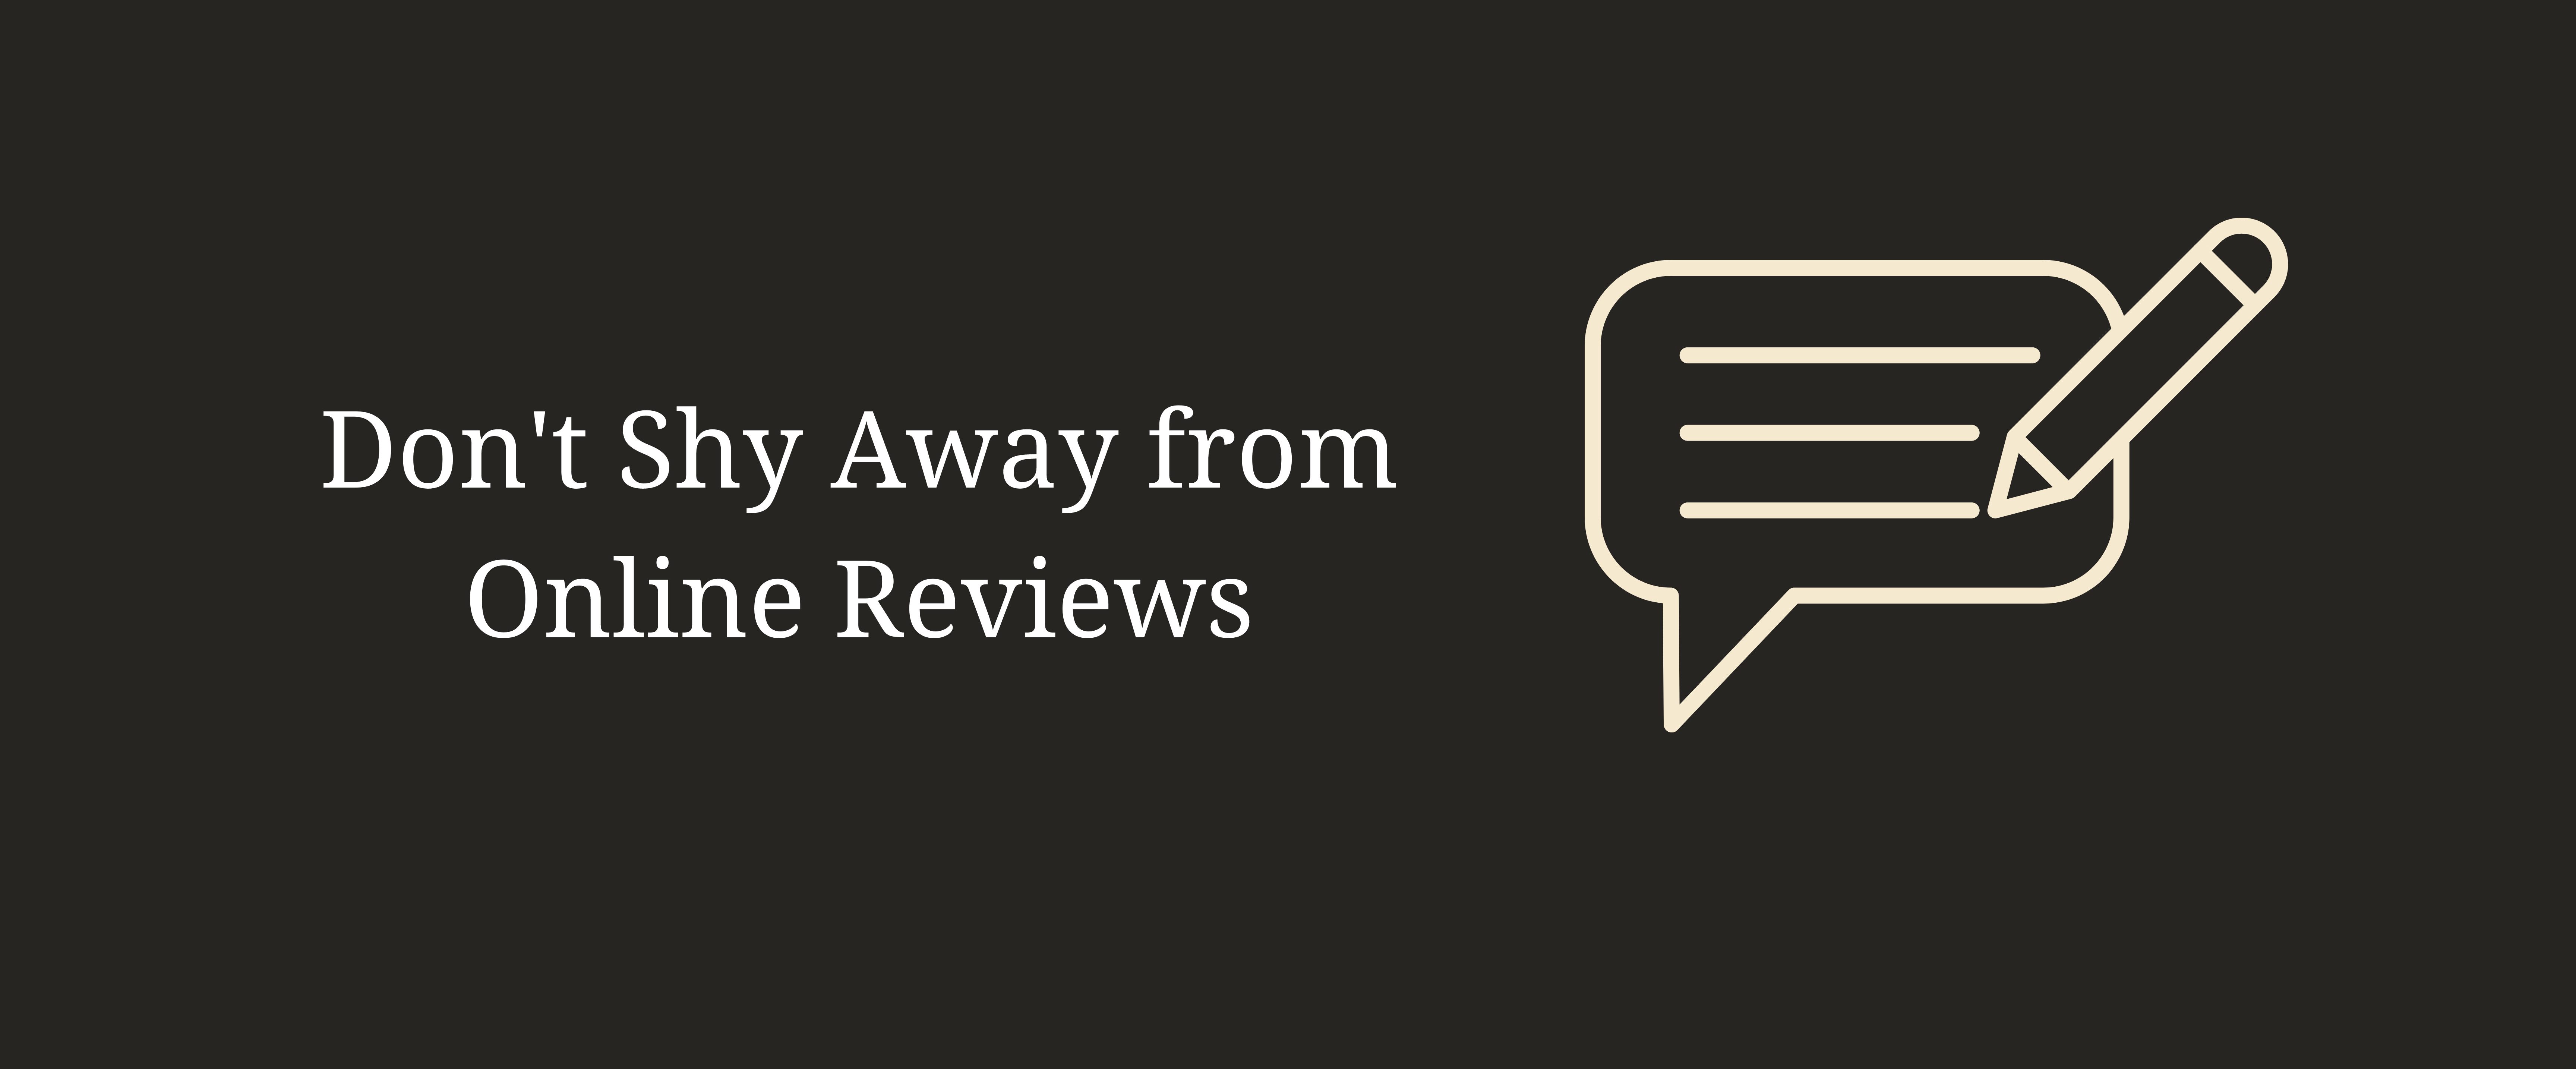 Don't Shy Away from Online Reviews